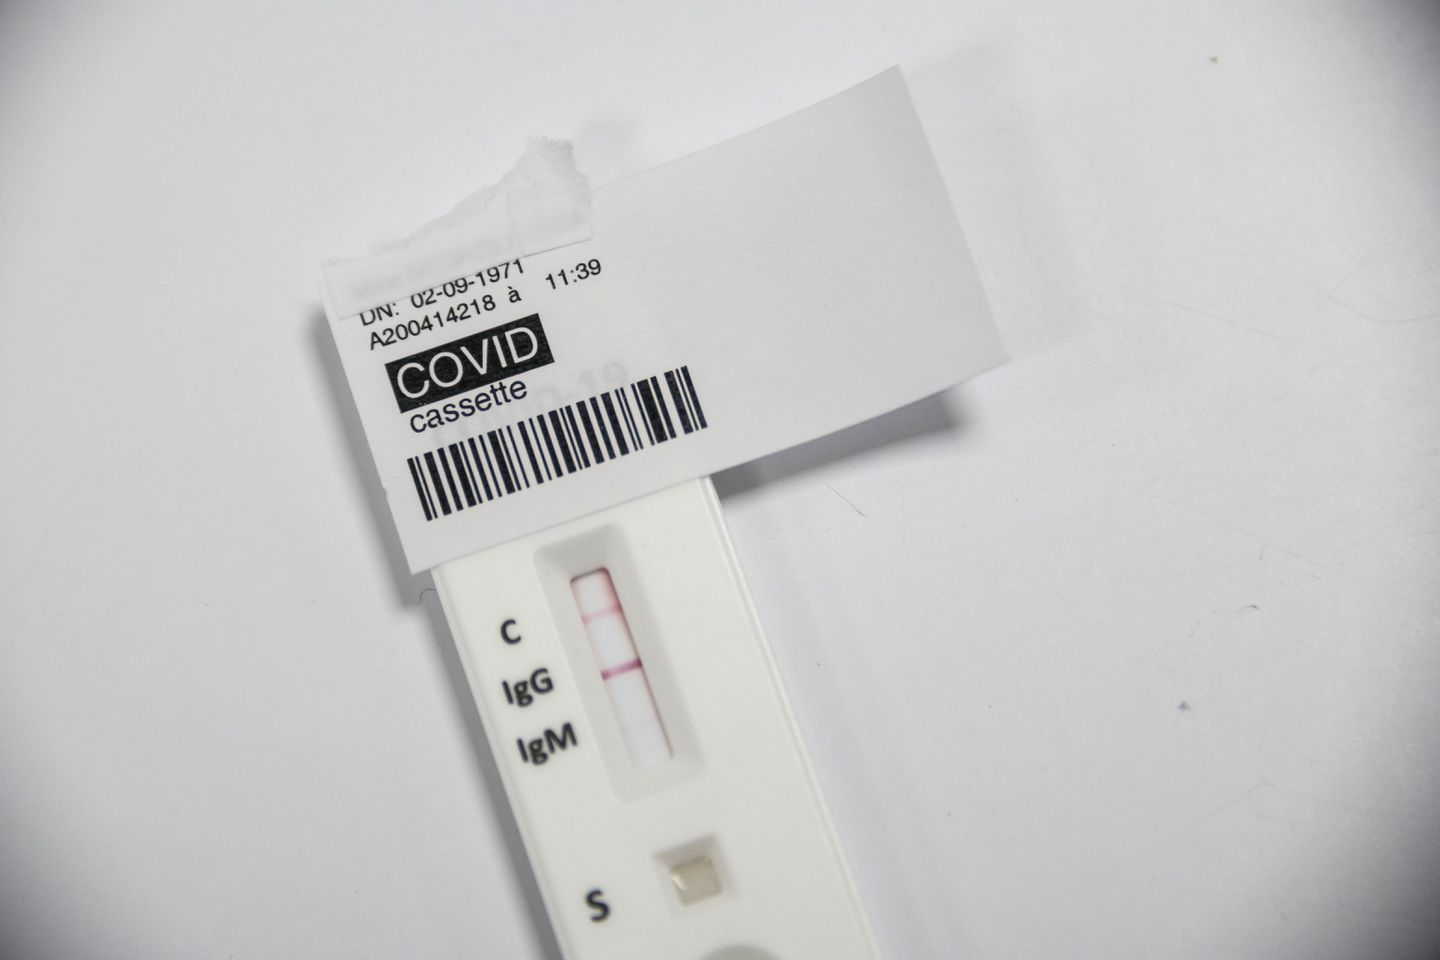 A positive COVID-19 serological test at a laboratory in Colmar, eastern France, on April 14, the 29th day of a strict lockdown in France to stop the spread of COVID-19.